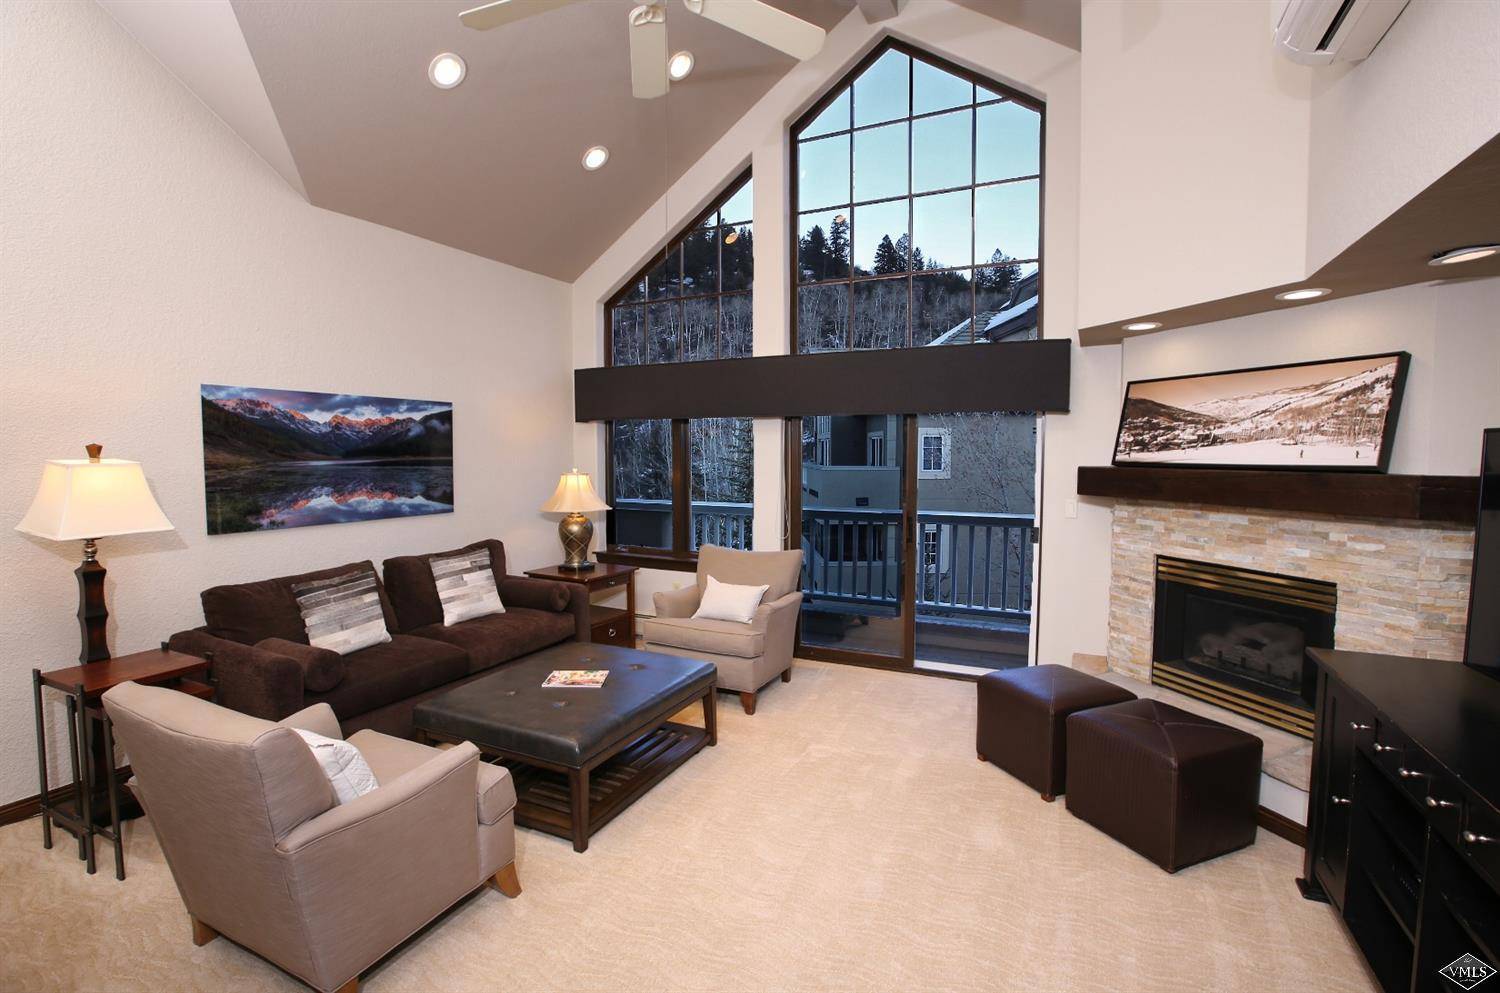 210 week 12 Offerson Road, 321, Beaver Creek, CO 81620 Property Photo